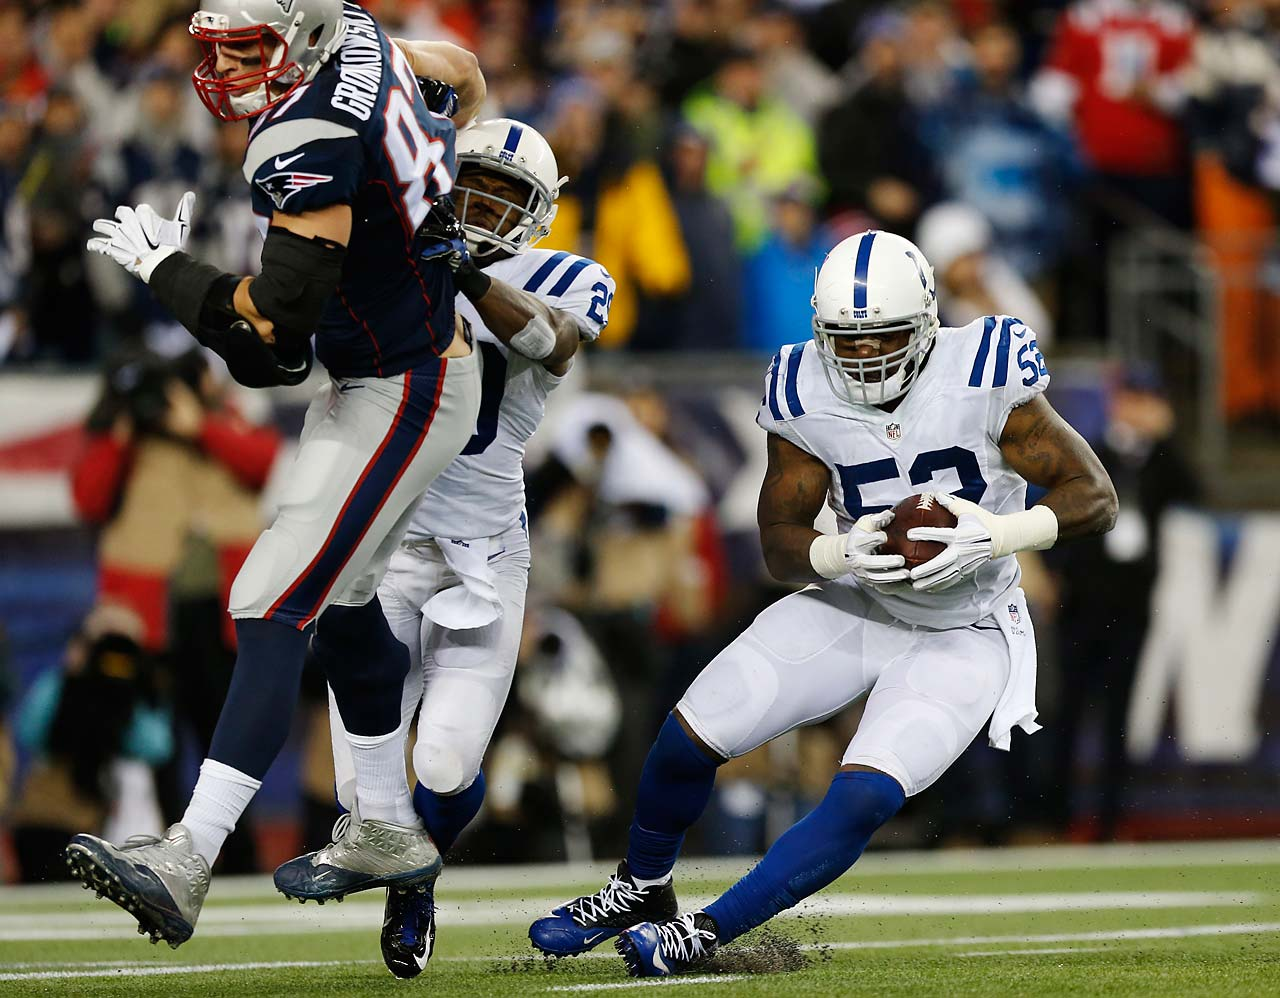 Indianapolis Colts inside linebacker D'Qwell Jackson intercepts a pass intended for Rob Gronkowski during the first half.